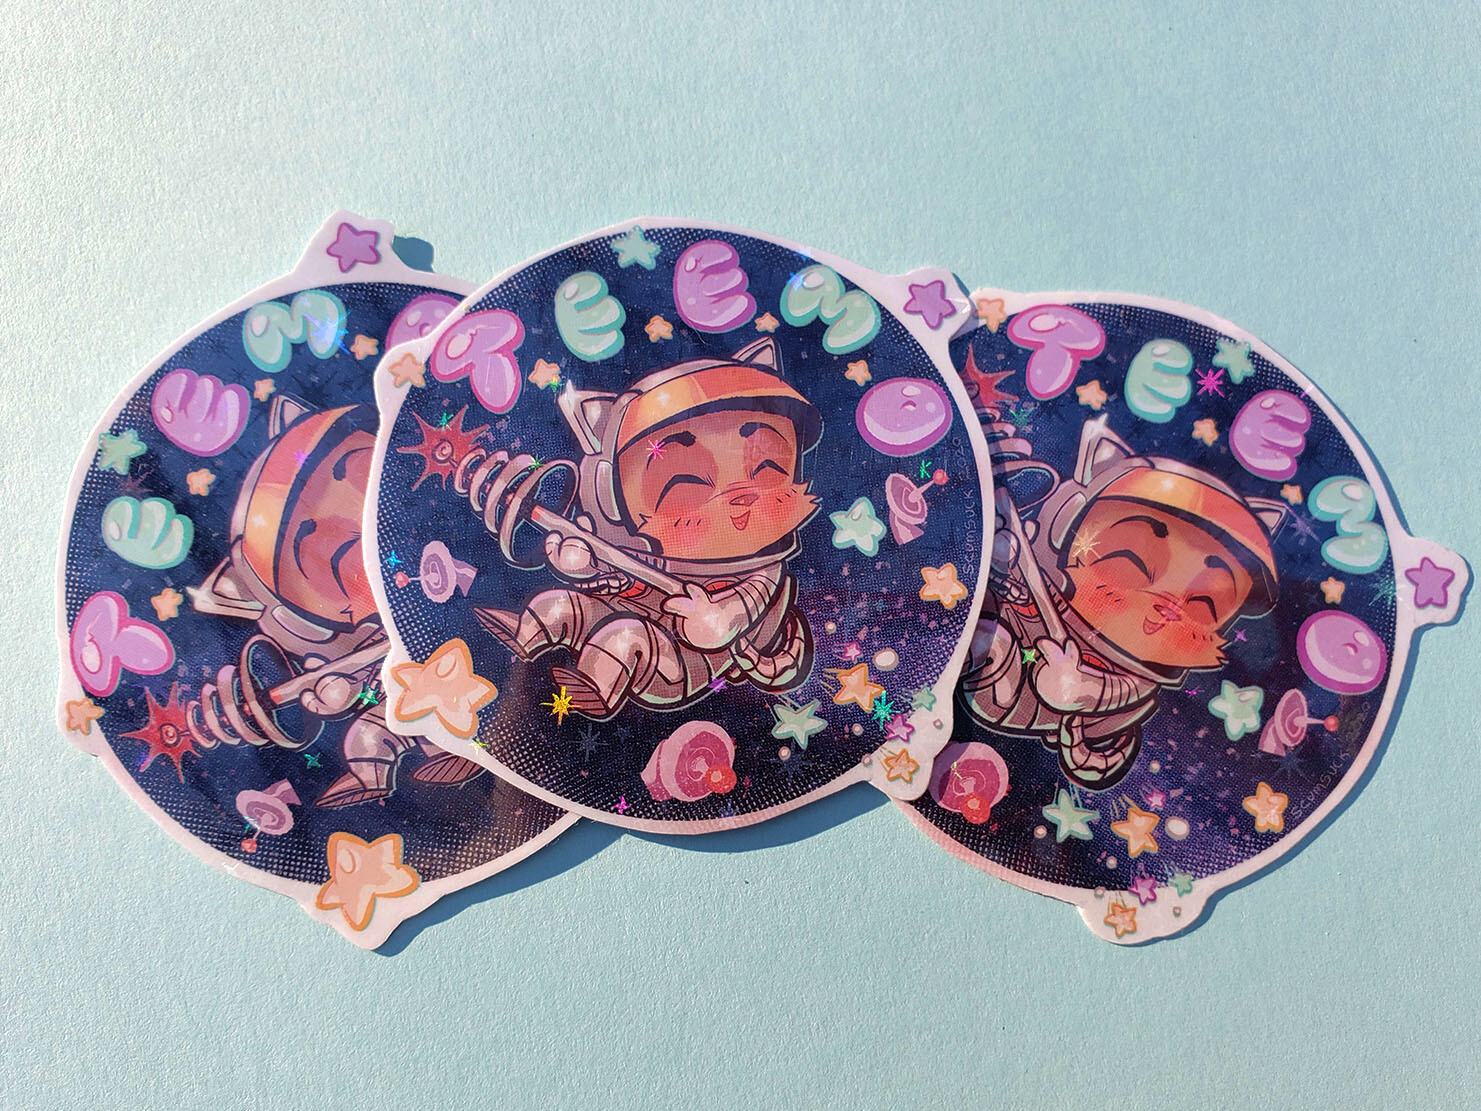 Space Teemo stickers!